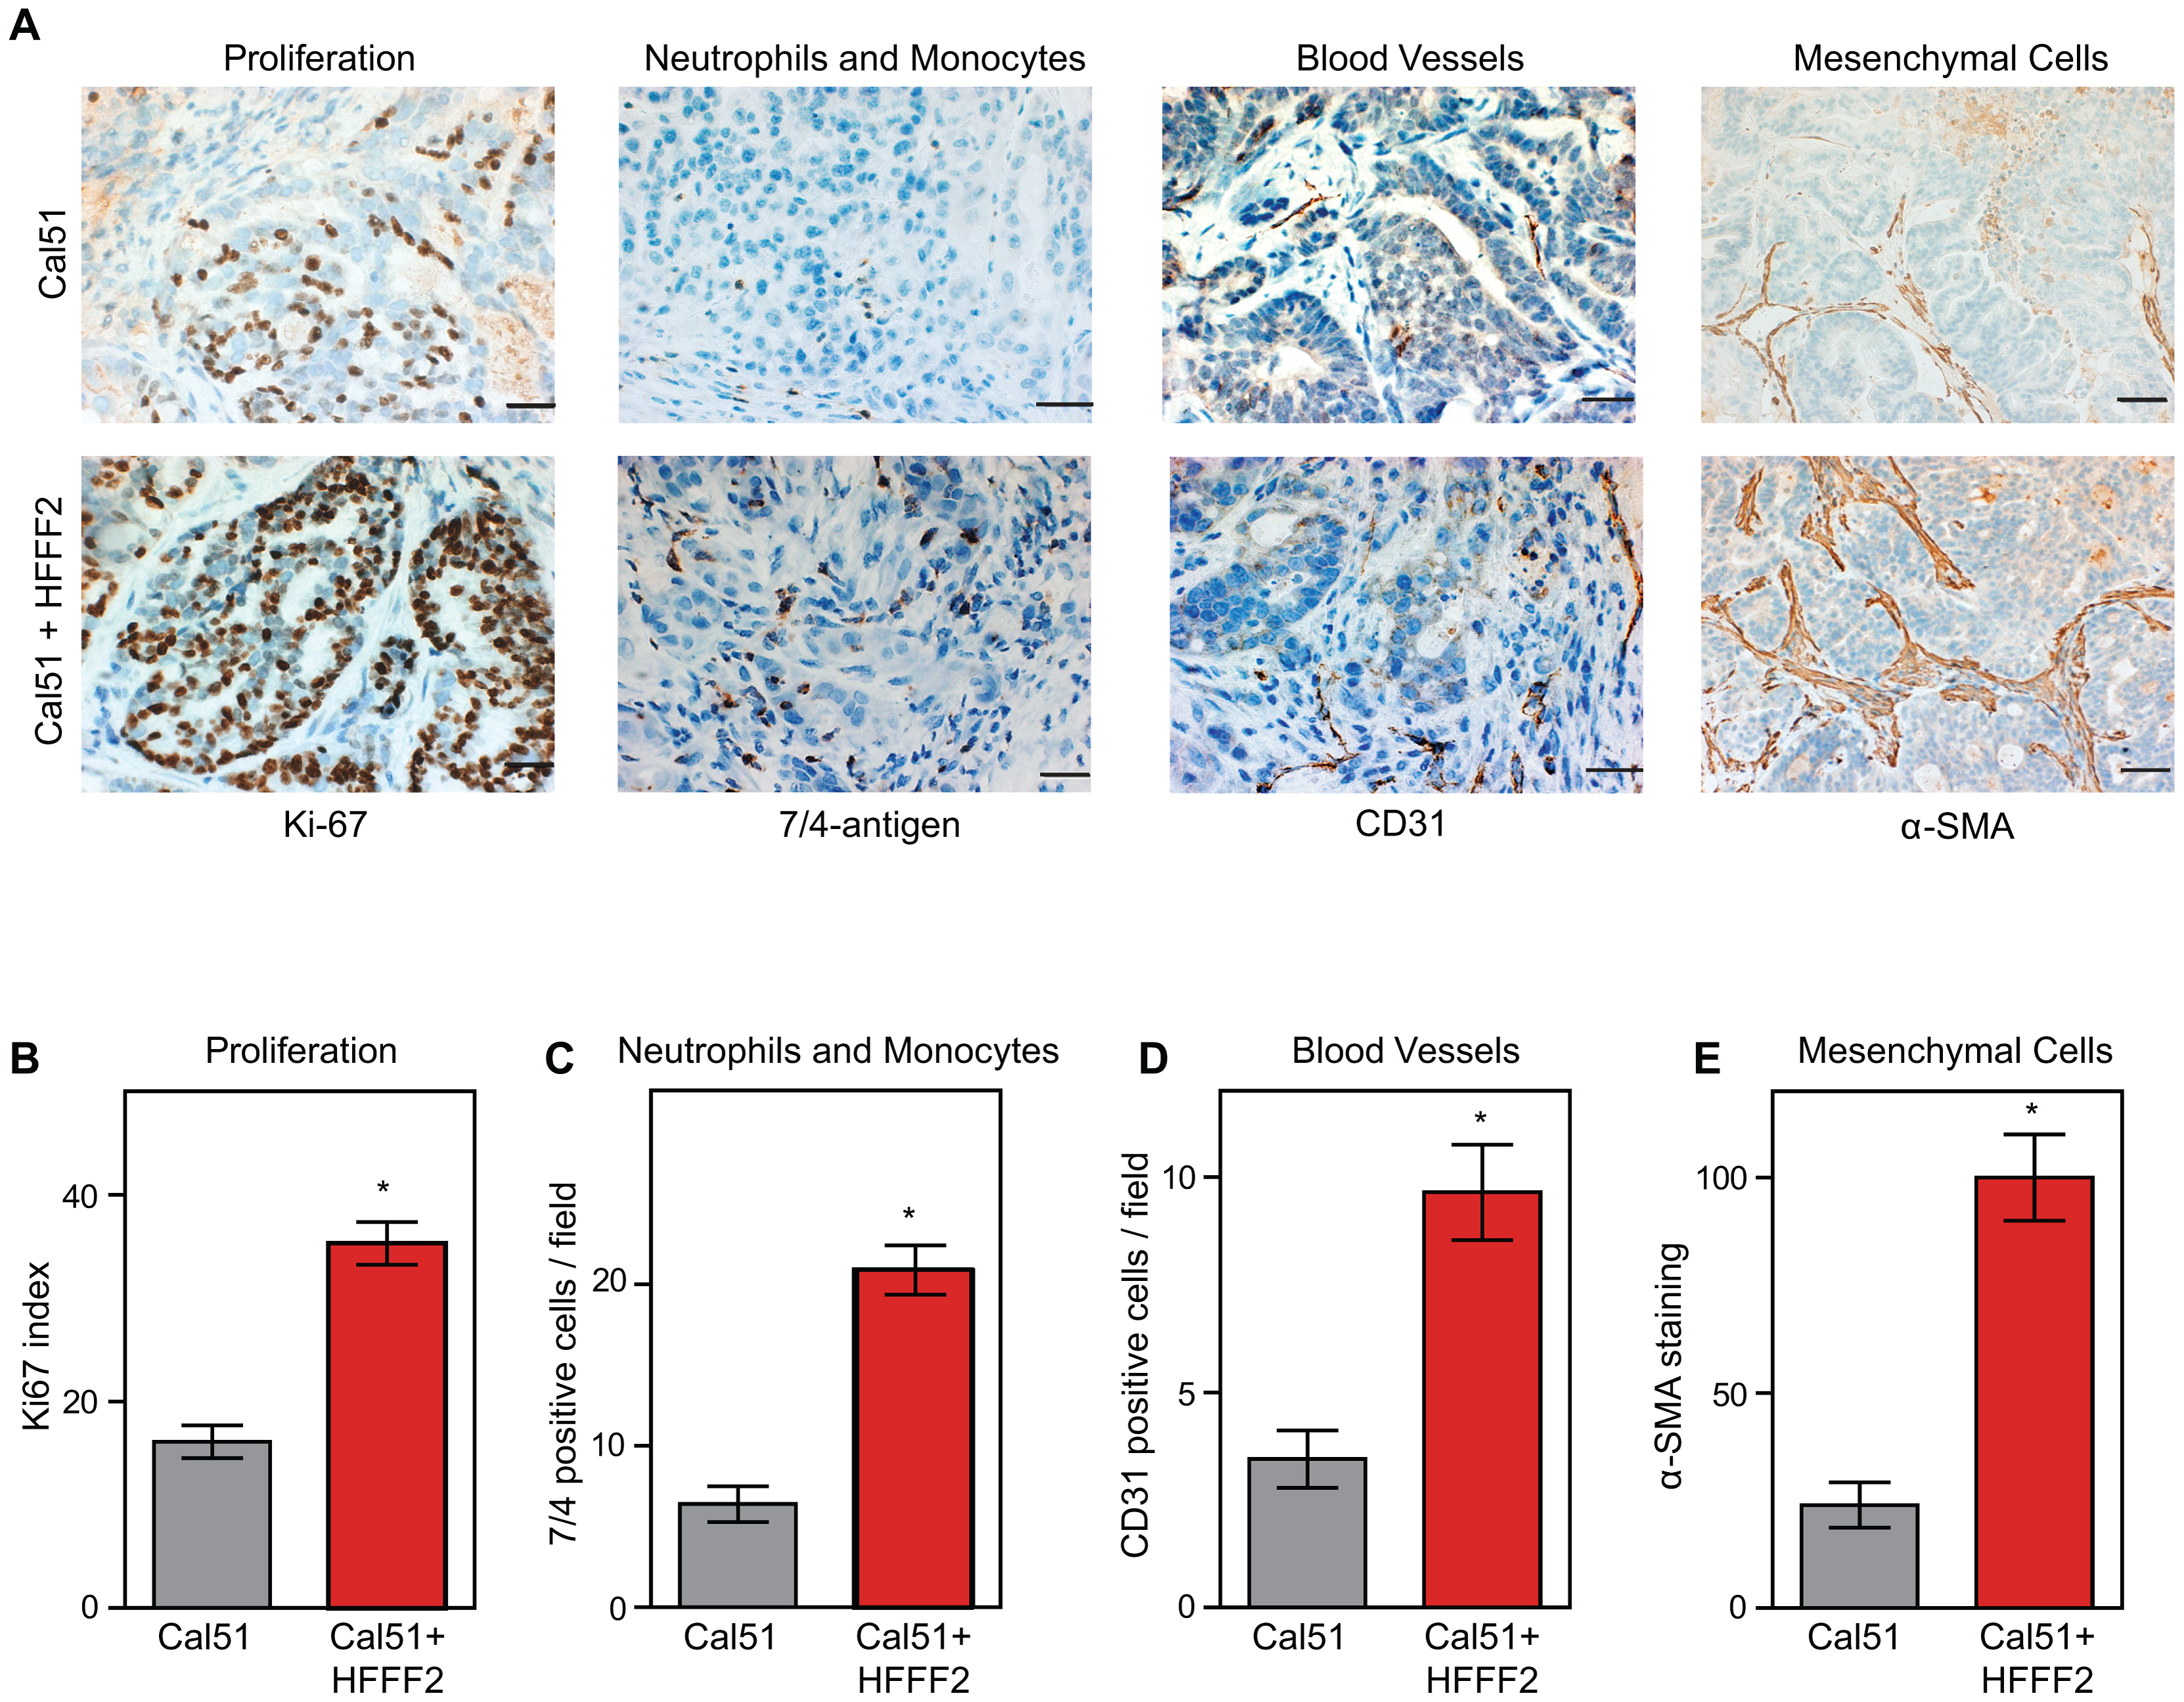 Tumor-supportive fibroblasts have profound effects on the composition of the tumor microenvironment.